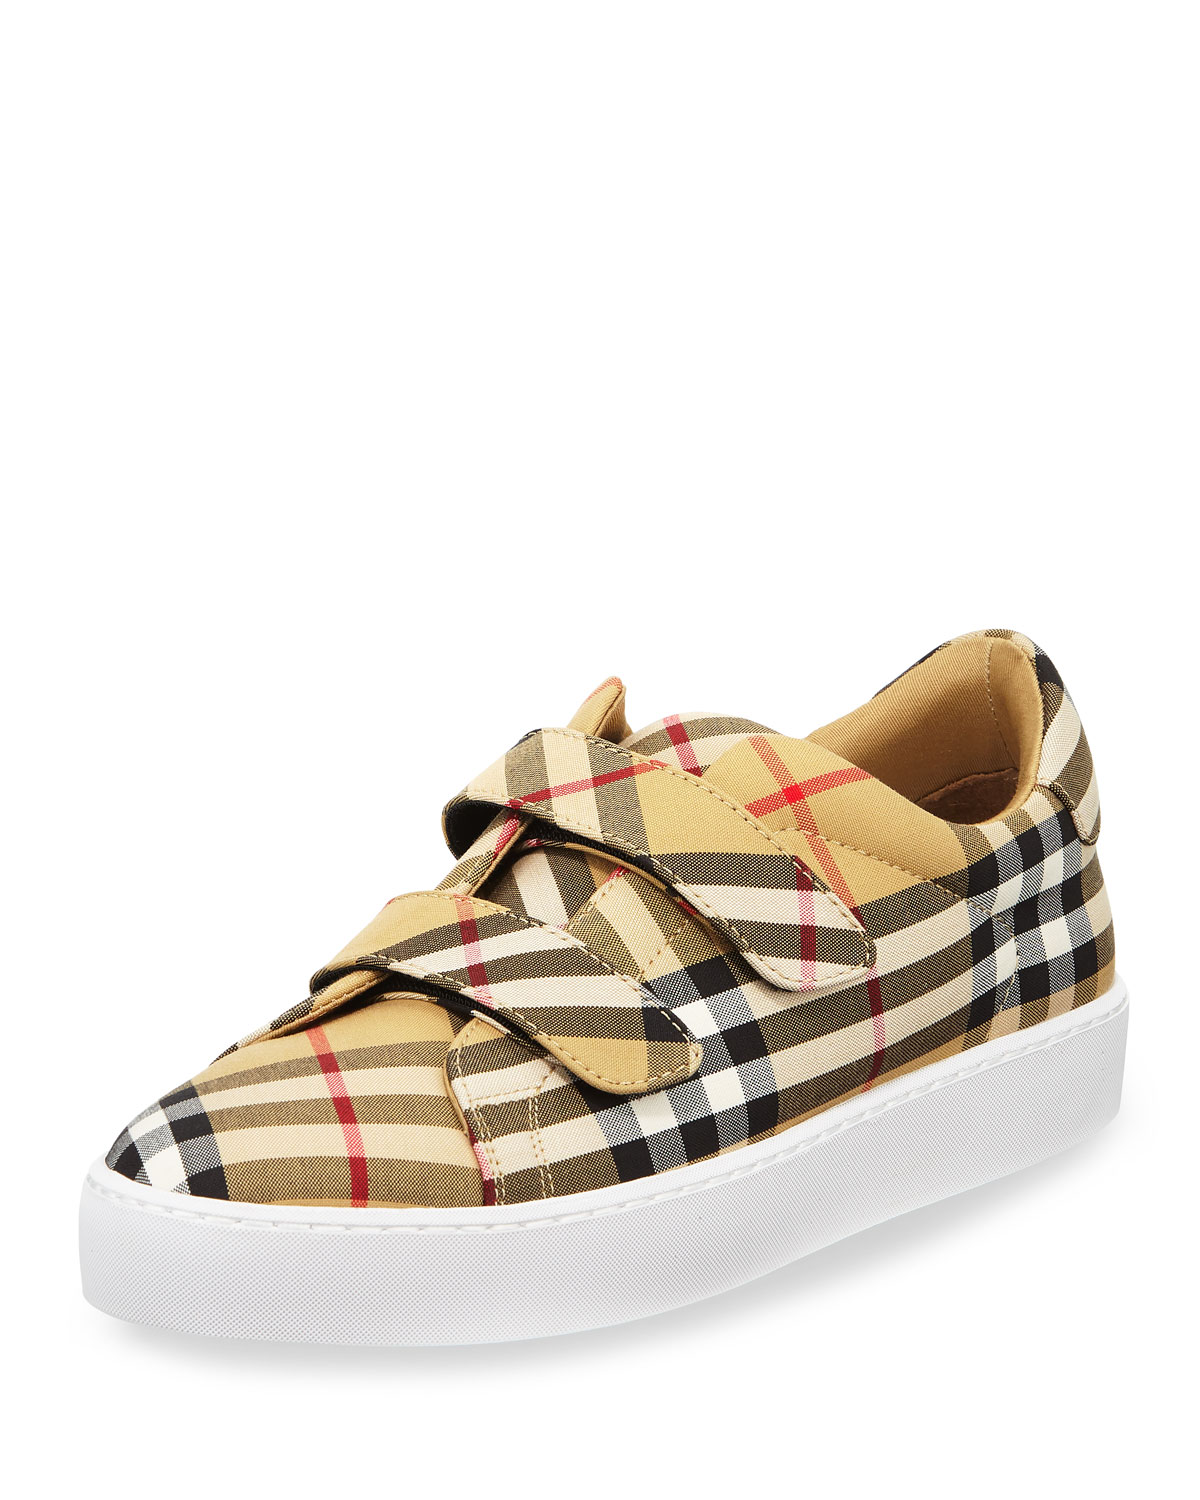 Women'S Alexandra Vintage Check Sneakers in Antique Yel